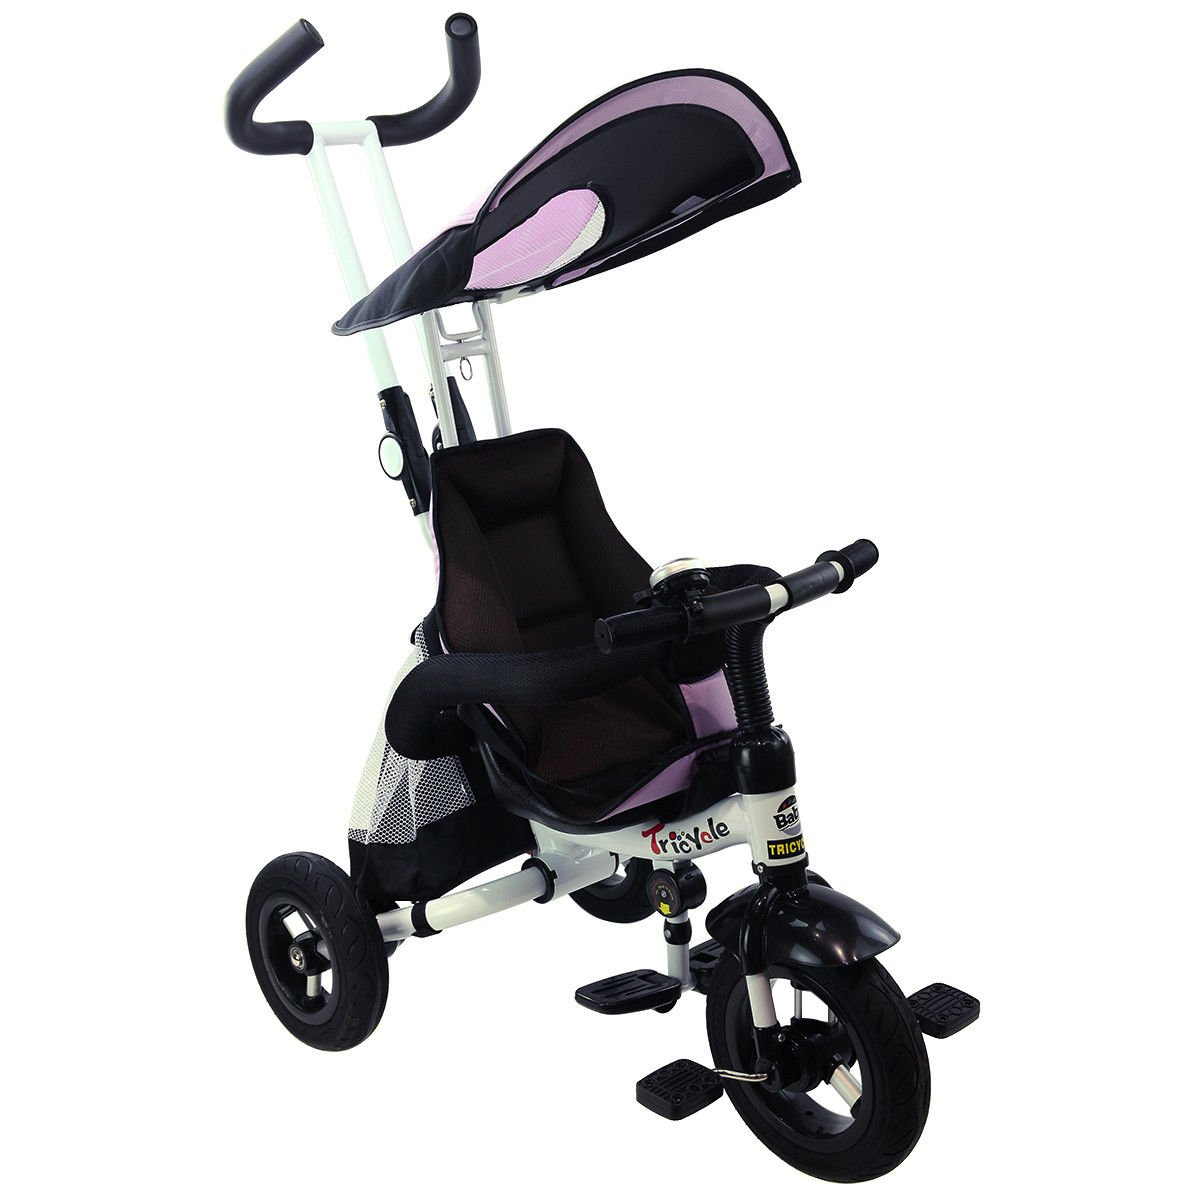 4-In-1 Kids Baby Stroller Tricycle Detachable Learning Toy Bike w/ Canopy Bag + FREE E - Book